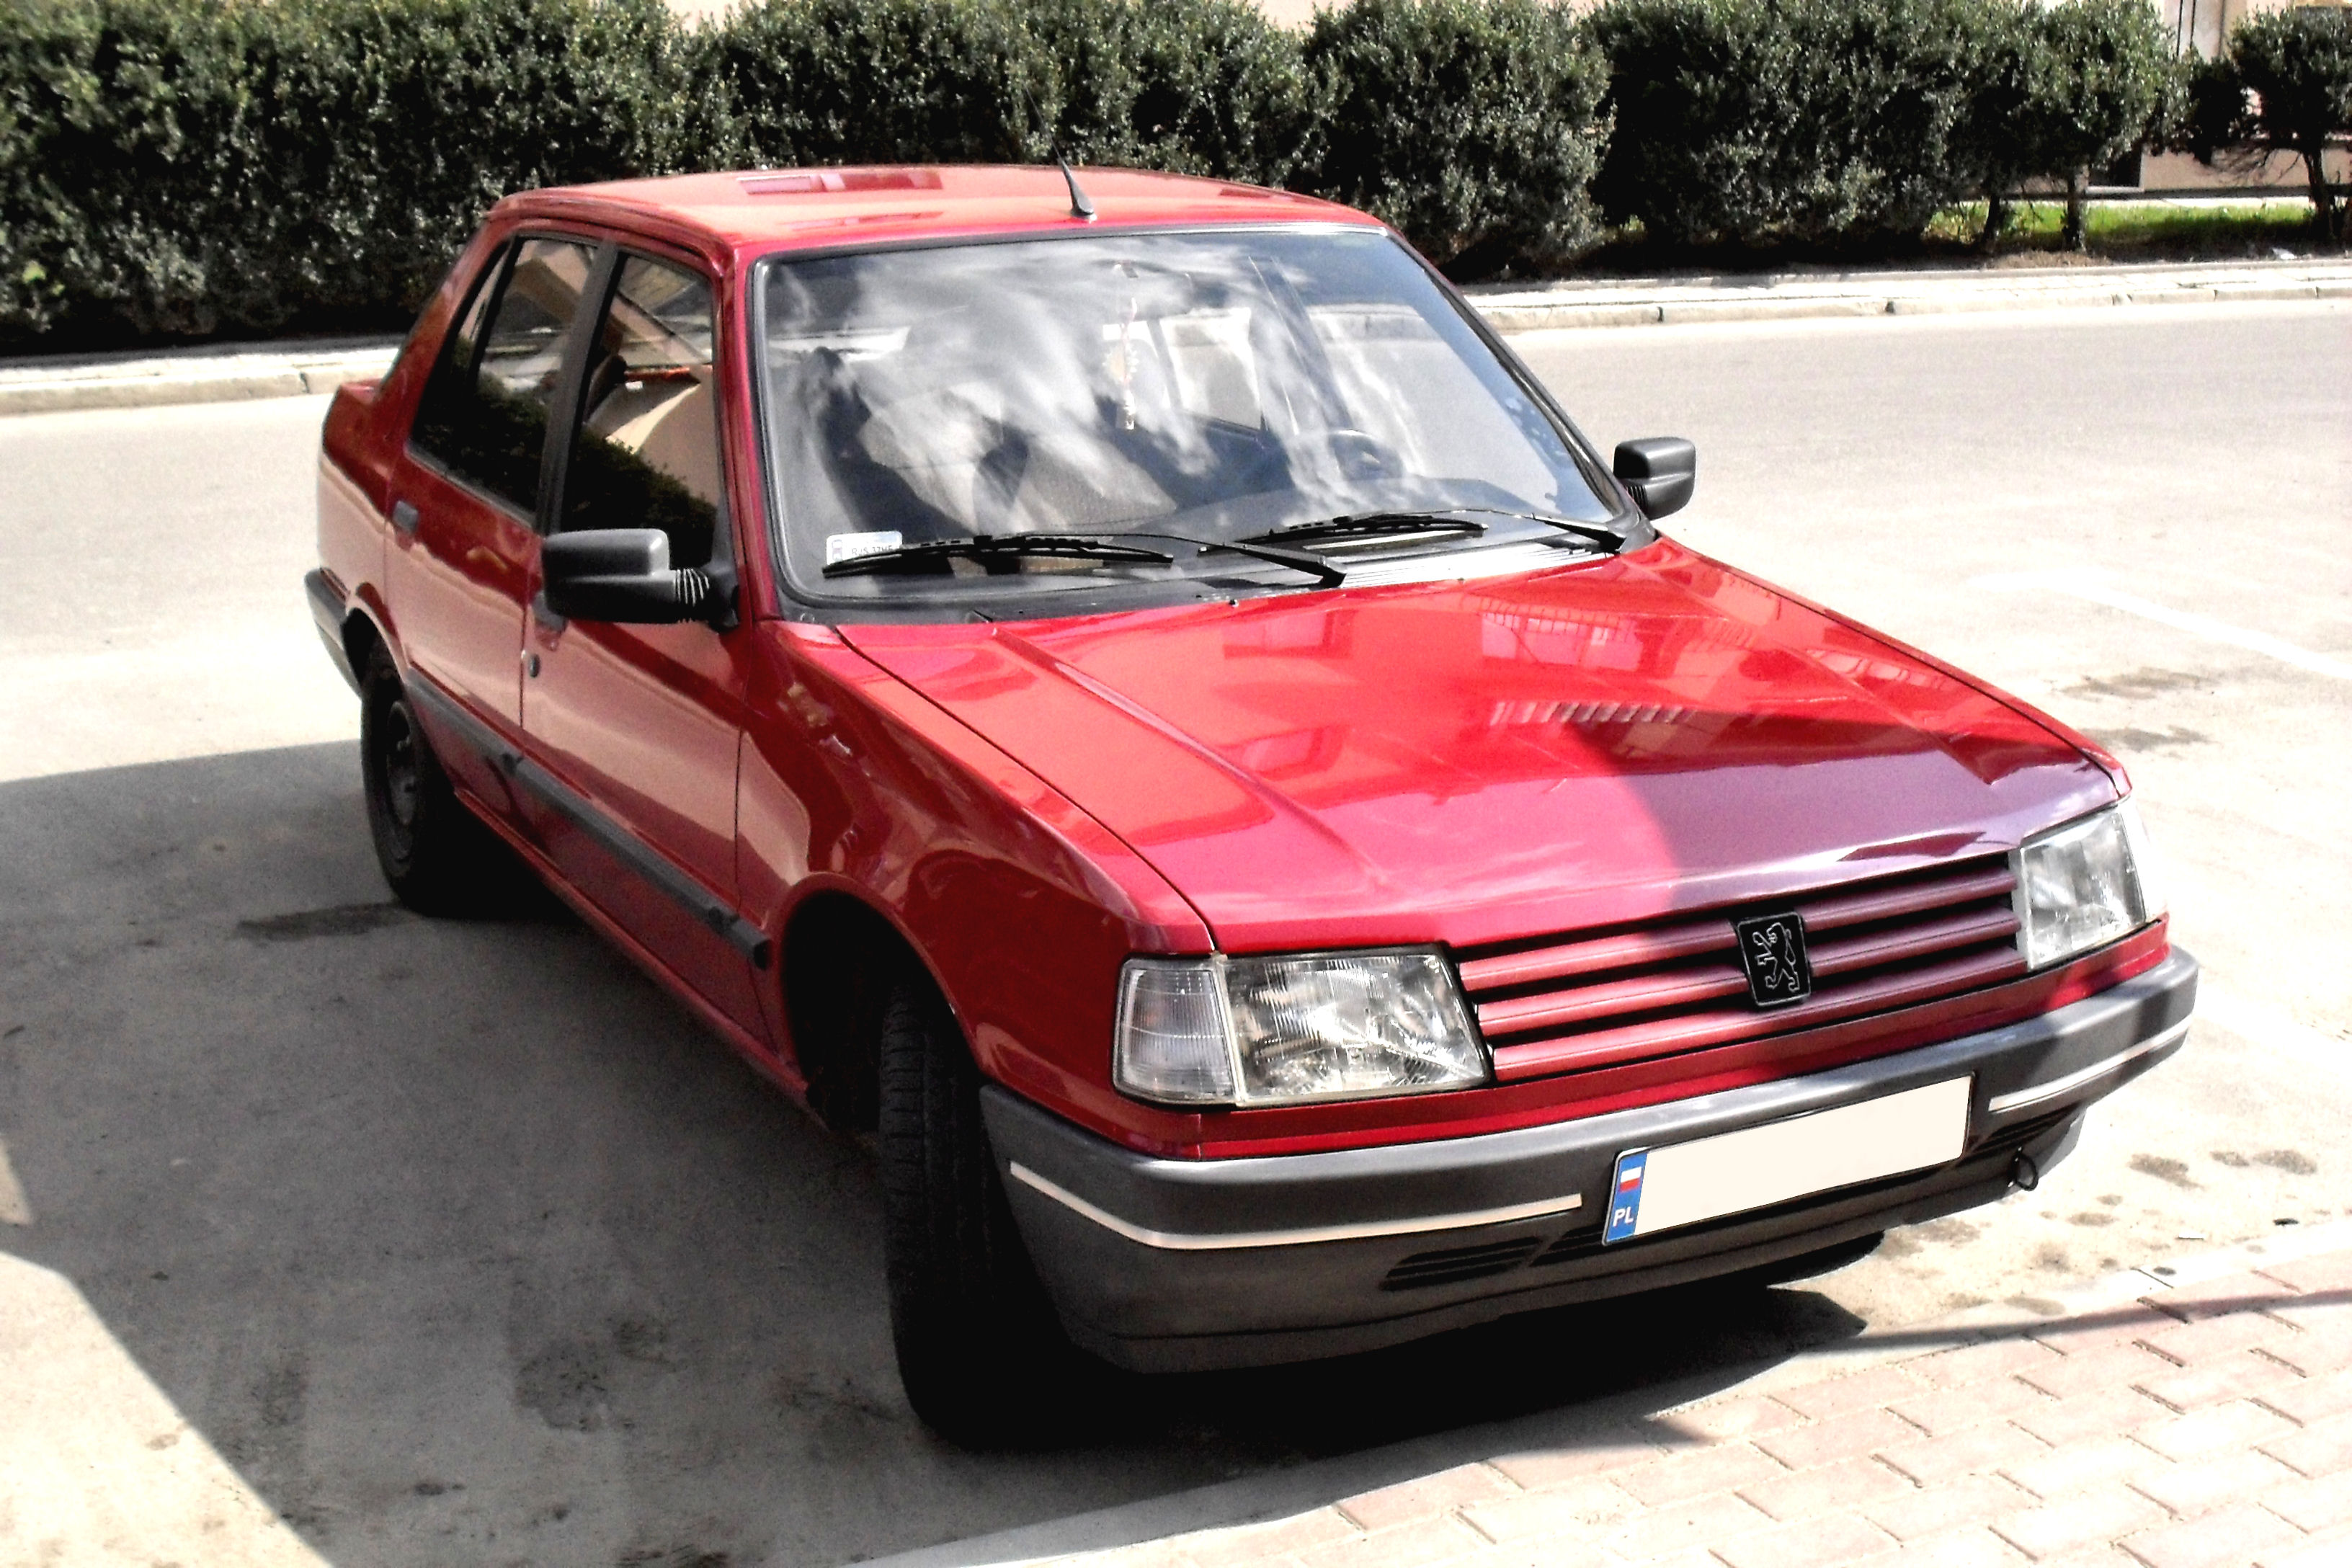 PEUGEOT 309 red